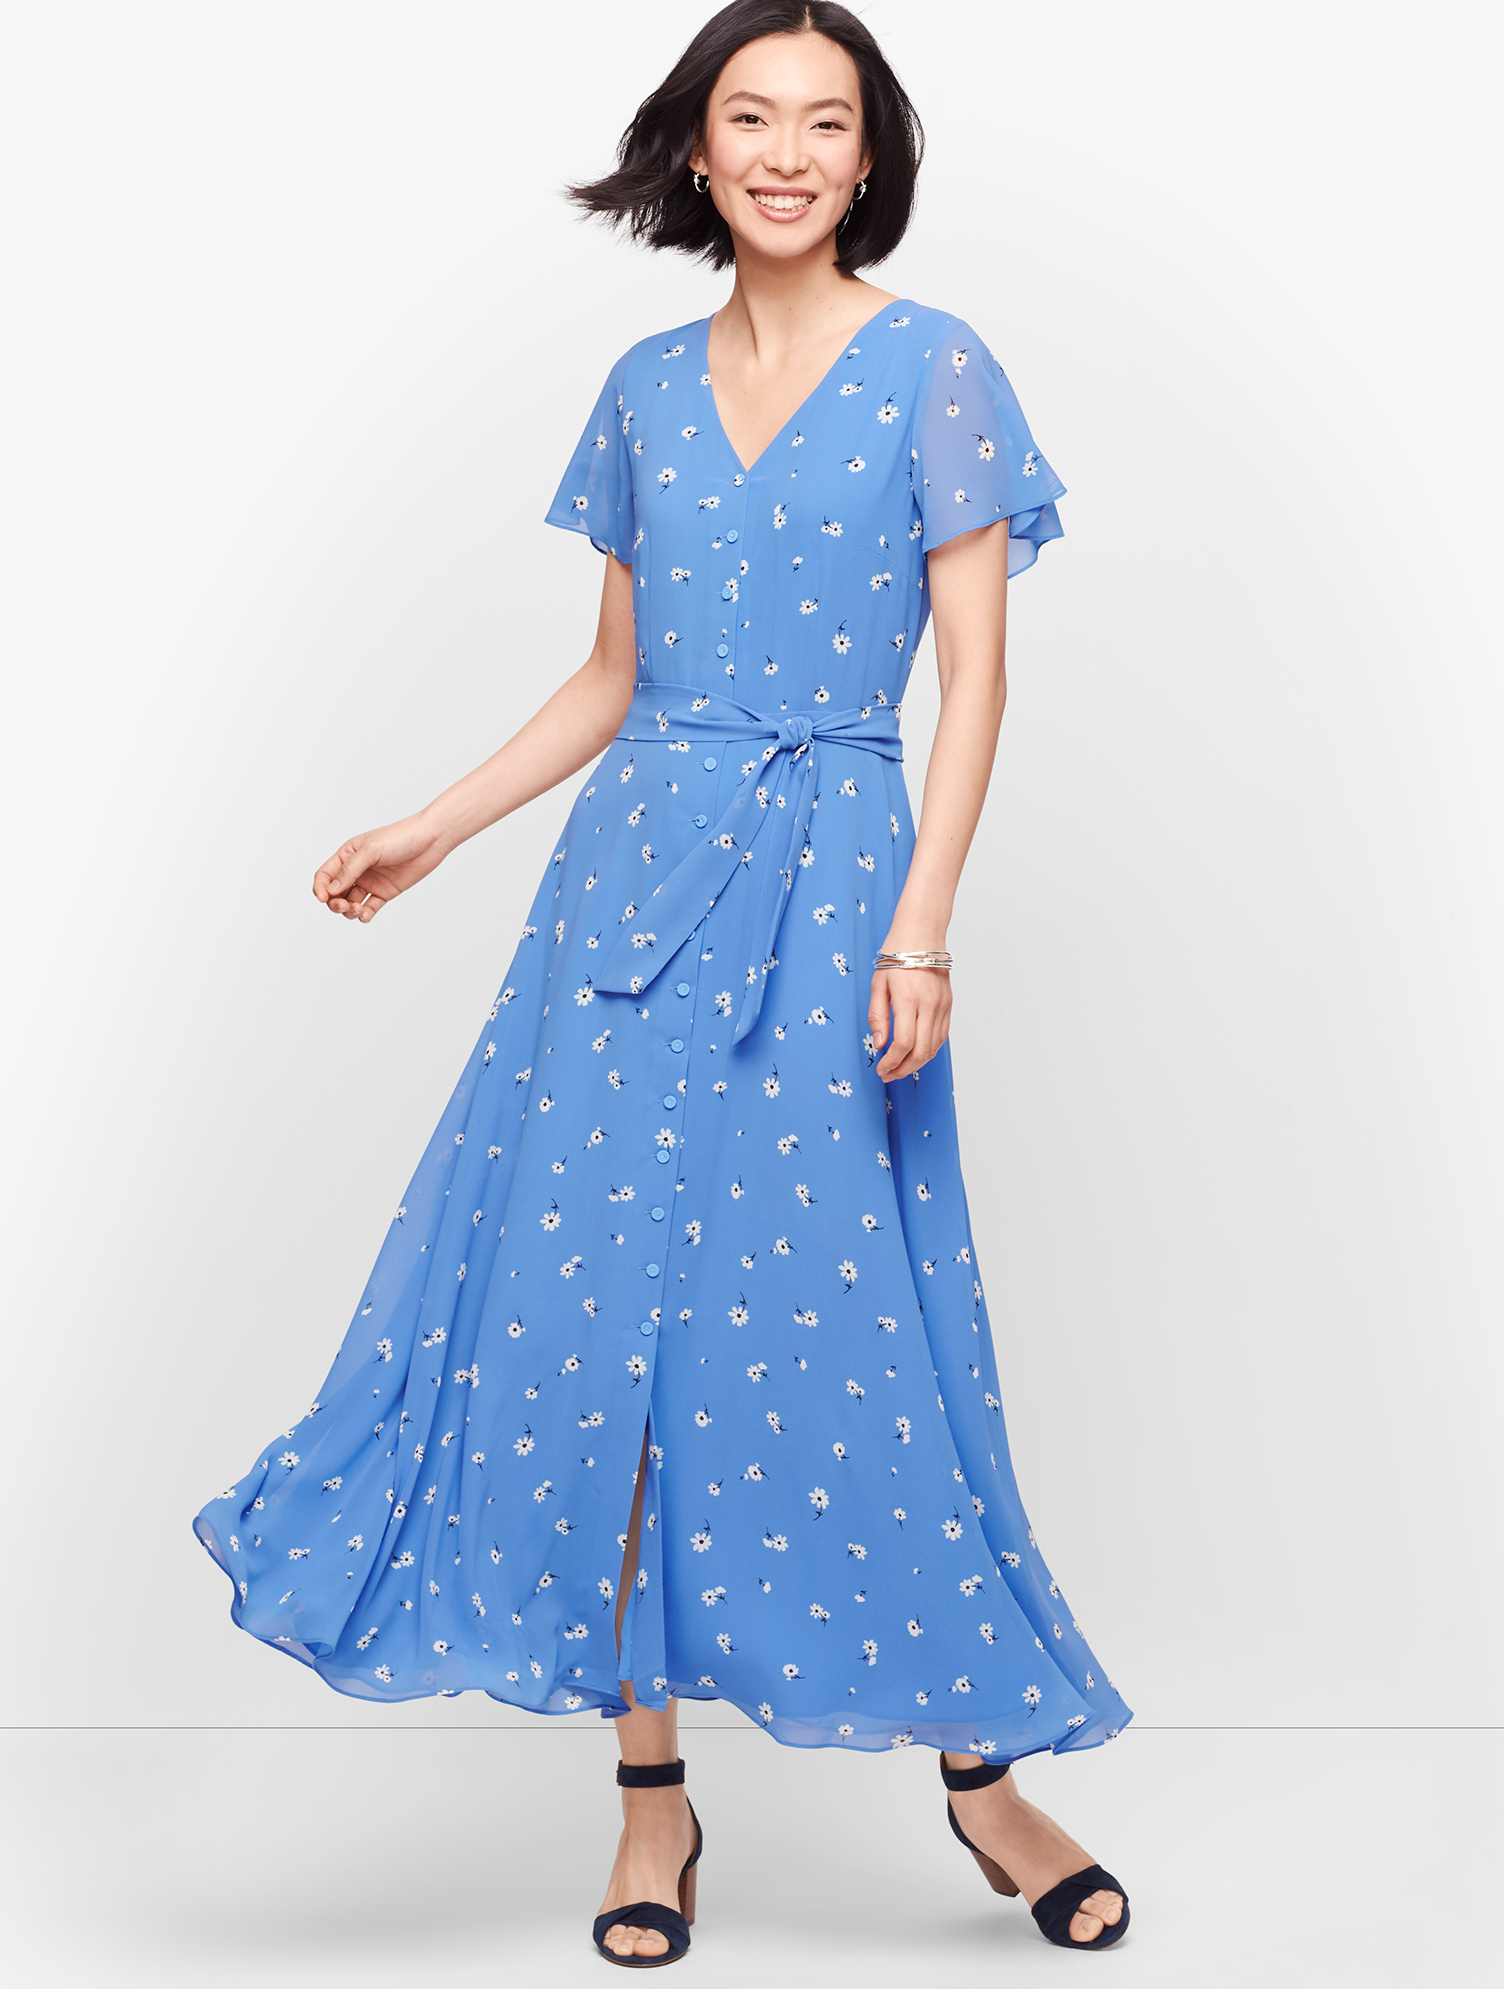 Flowy chiffon. Fashionable flounce hem. Flutter sleeves. Sash tie. This midi dress has it all. Features Silhouette: Fit & flare Neckline: V-Neck Sleeve length: Short Invisible back zip Bodice Lined Imported Fit: Misses: 50 inches; Petite: 45 1/2 inches; Plus: 52 inches; Plus Petite: 50 inches Material: 100% Polyester; Lining: 100% Polyester Care: Machine Wash Cold; Line Dry Scattered Floral Tie Front Midi Dress - Blue Wave - 16 Talbots